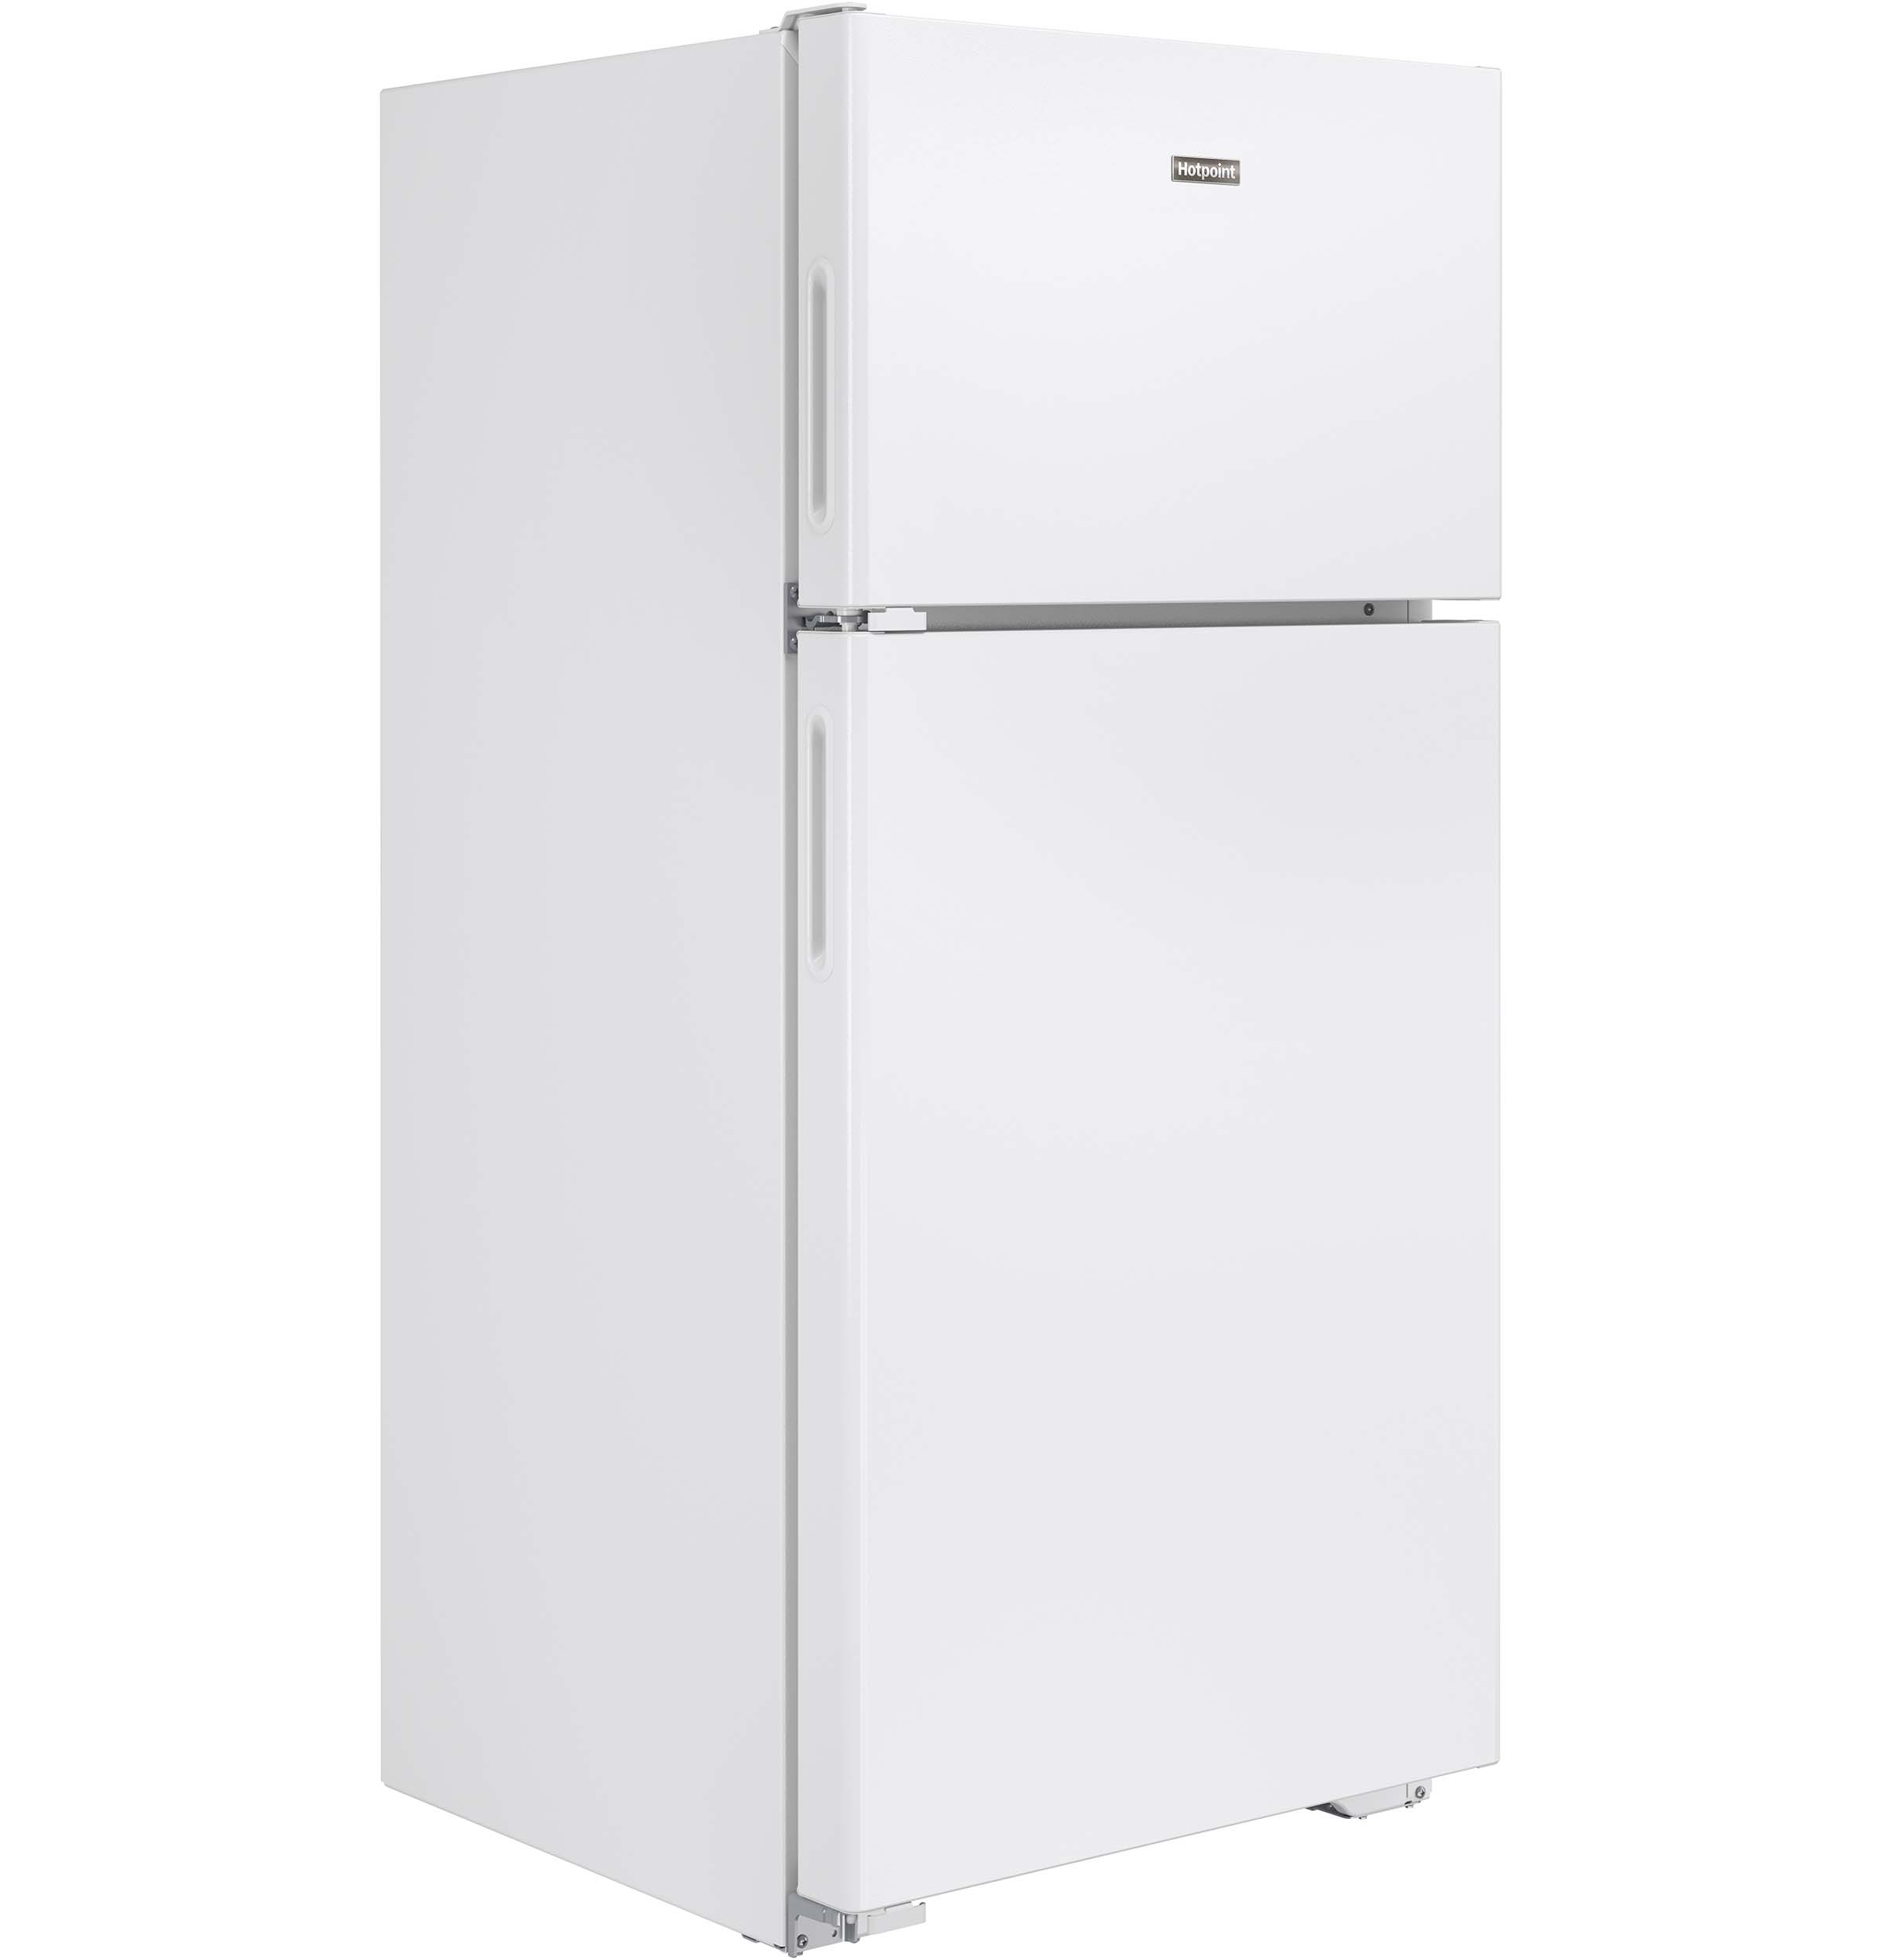 Model: HPS15BTHRWW | Hotpoint® 14.6 Cu. Ft. Recessed Handle Top-Freezer Refrigerator